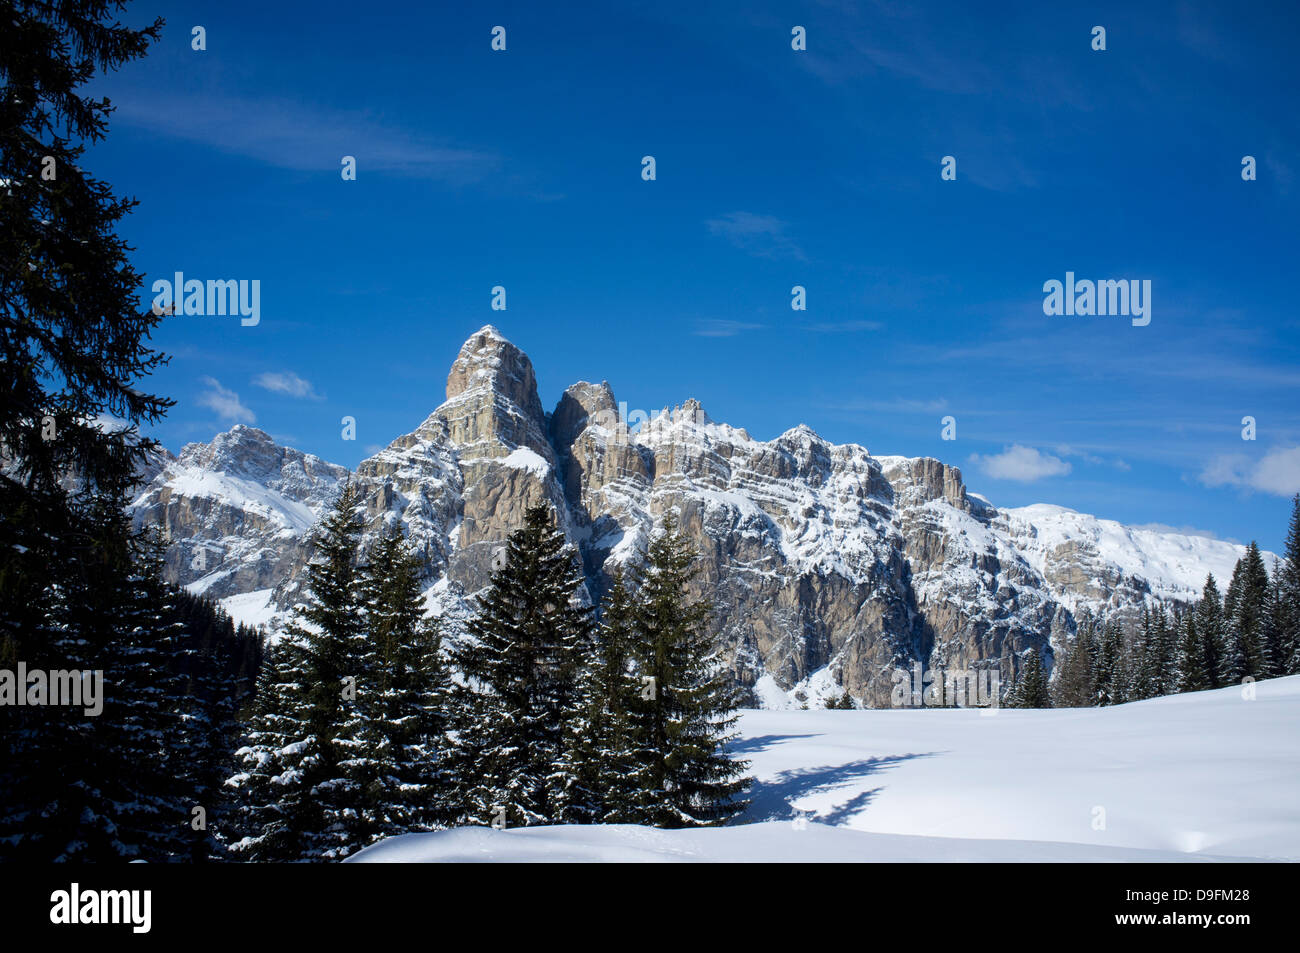 Sassongher Mountain seen from the snow covered Alta Badia ski resort near Corvara in the Dolomites, South Tyrol, Stock Photo